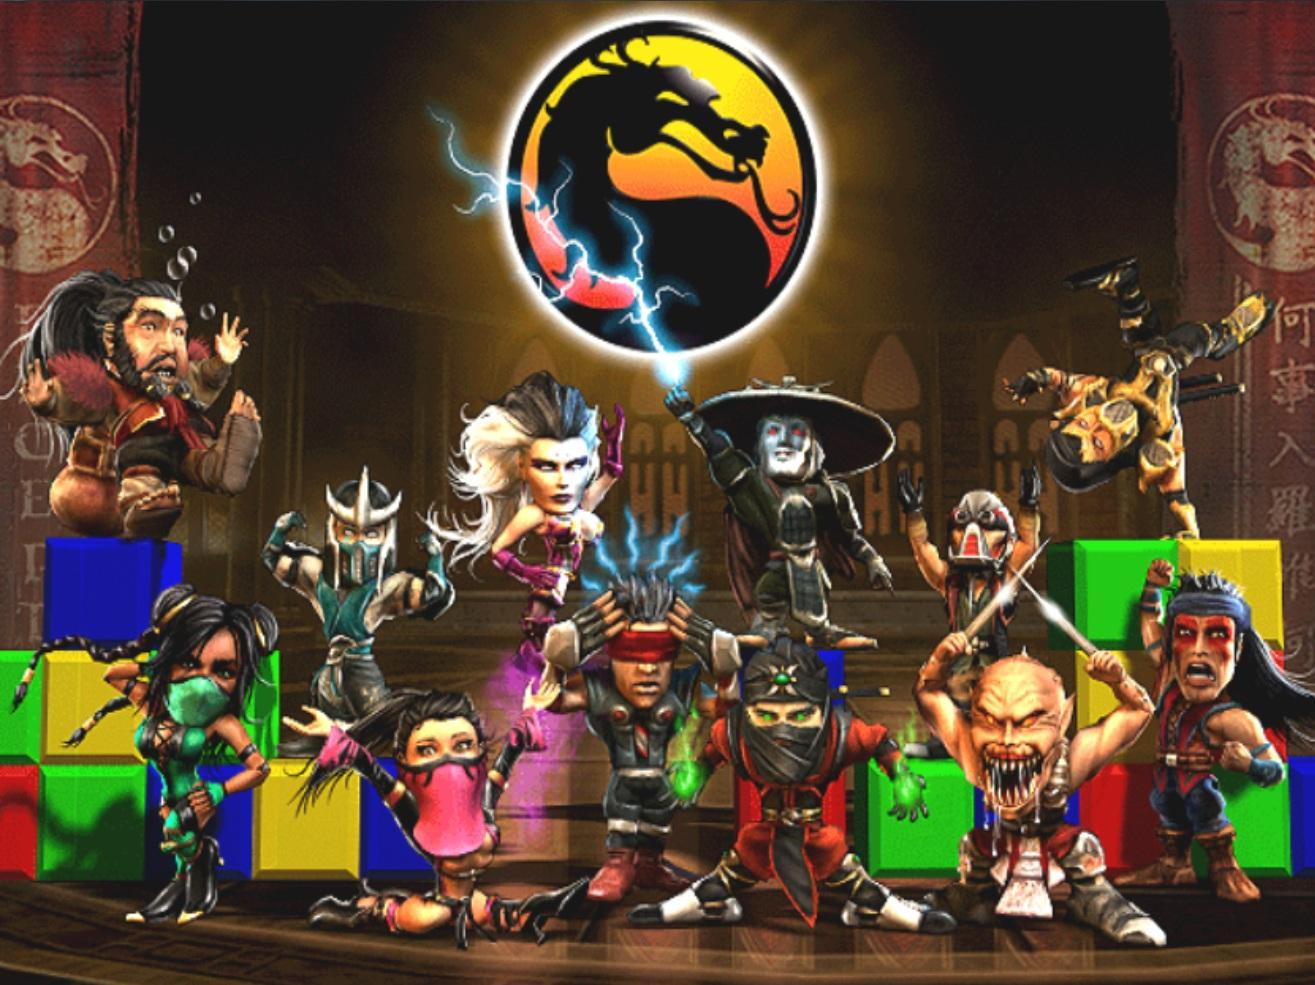 Puzzle Kombat | Mortal Kombat Wiki | FANDOM powered by Wikia